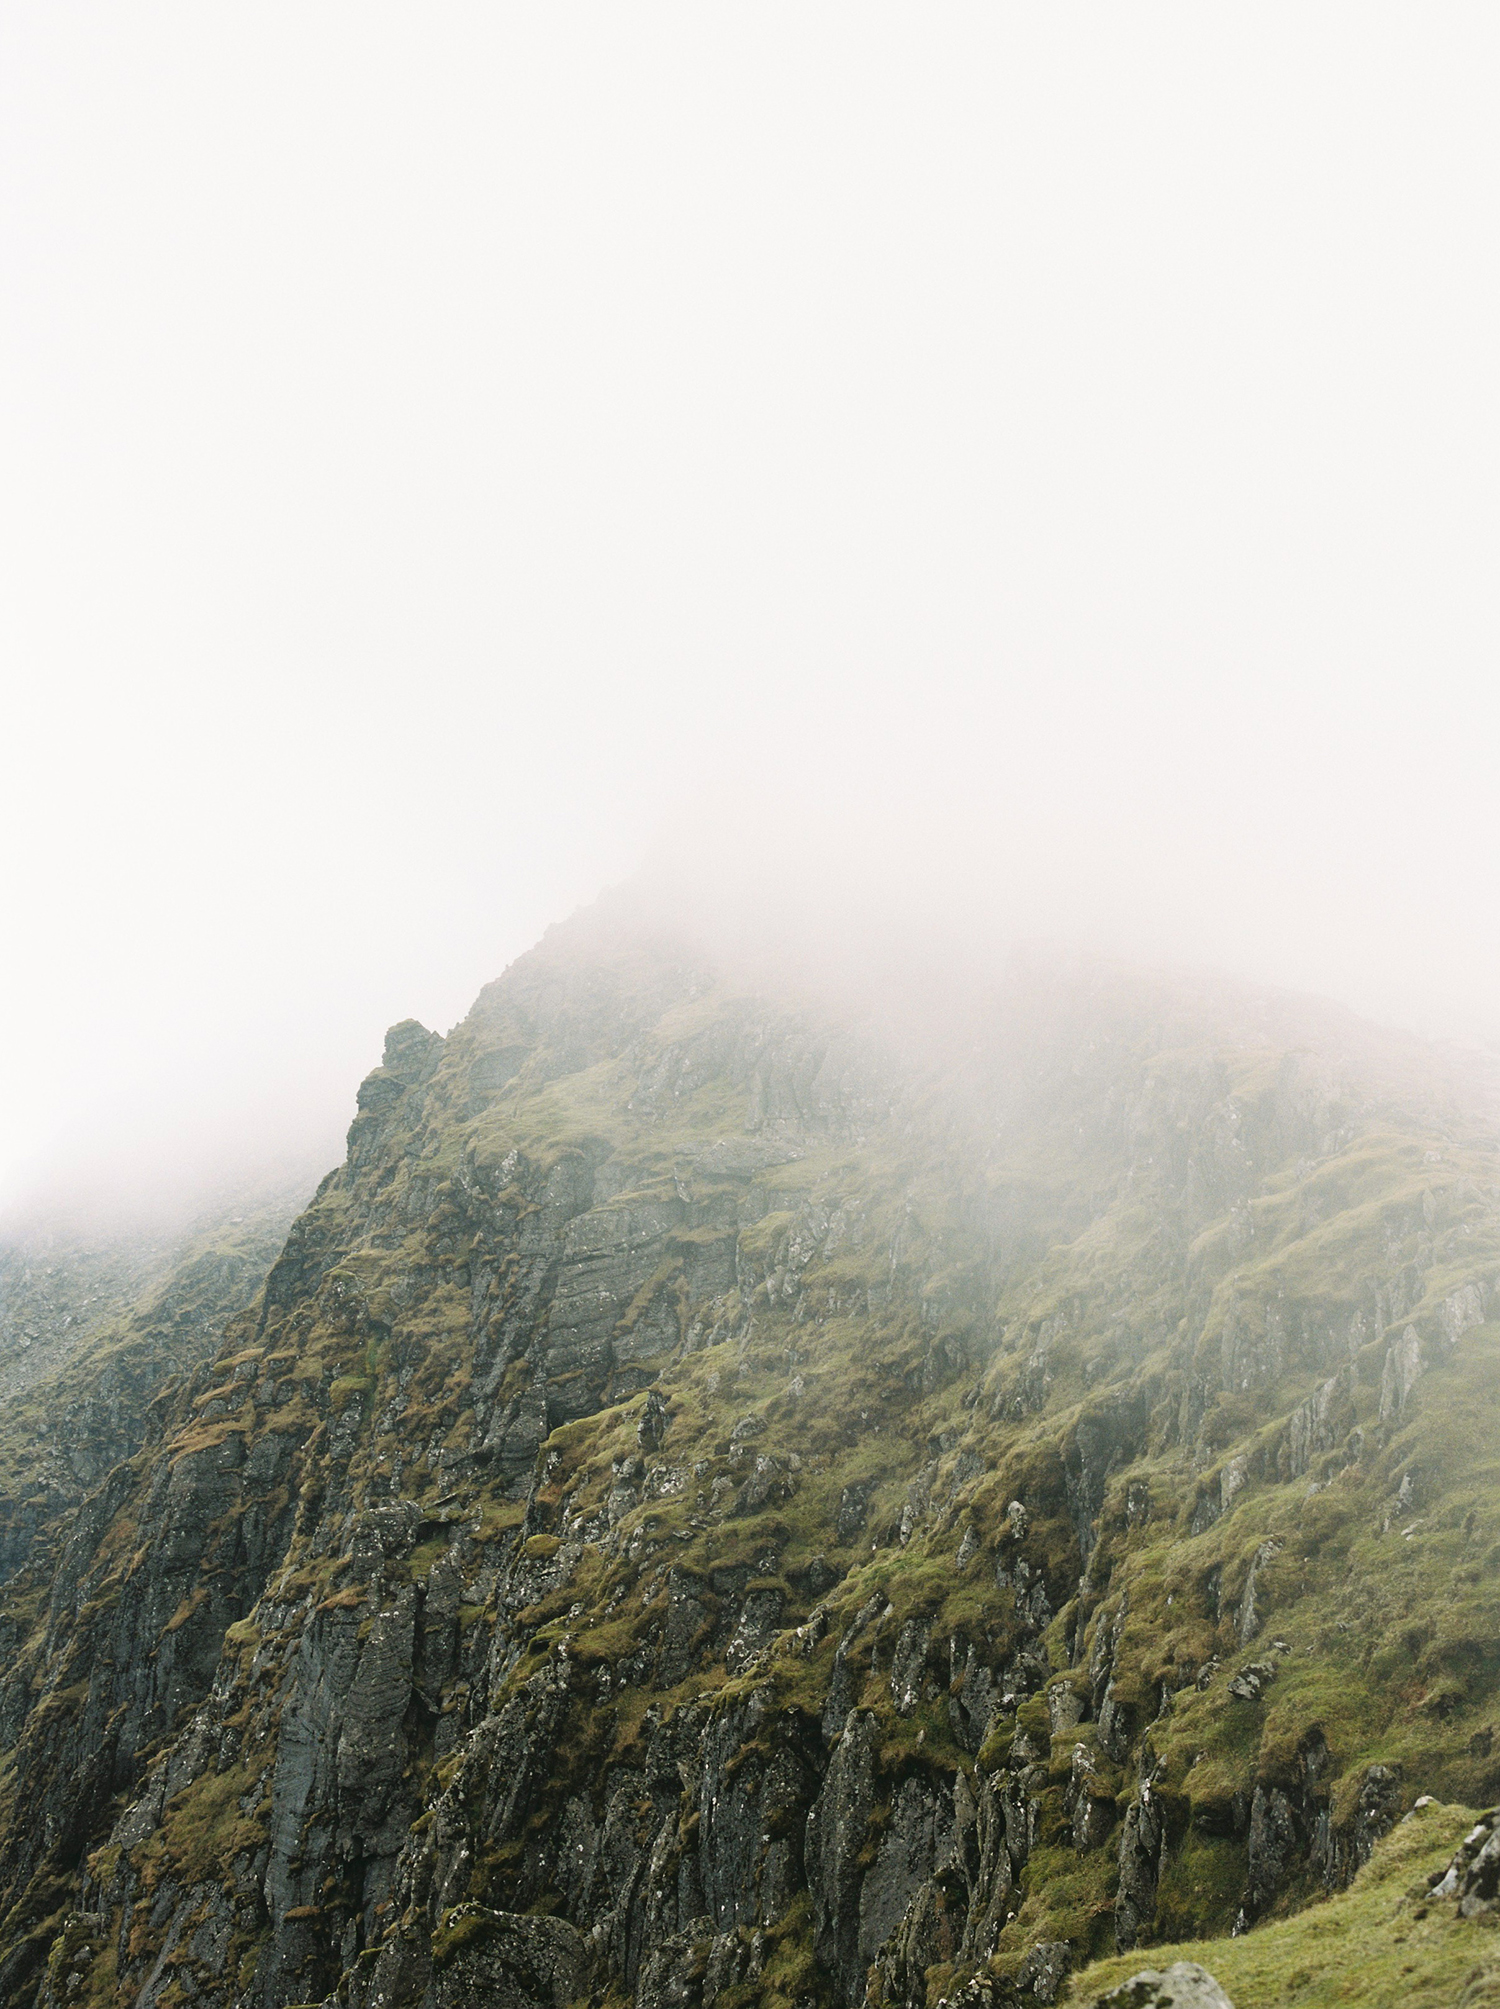 Snowdon summit shot on Kodak film. By Dmitry Serostanov